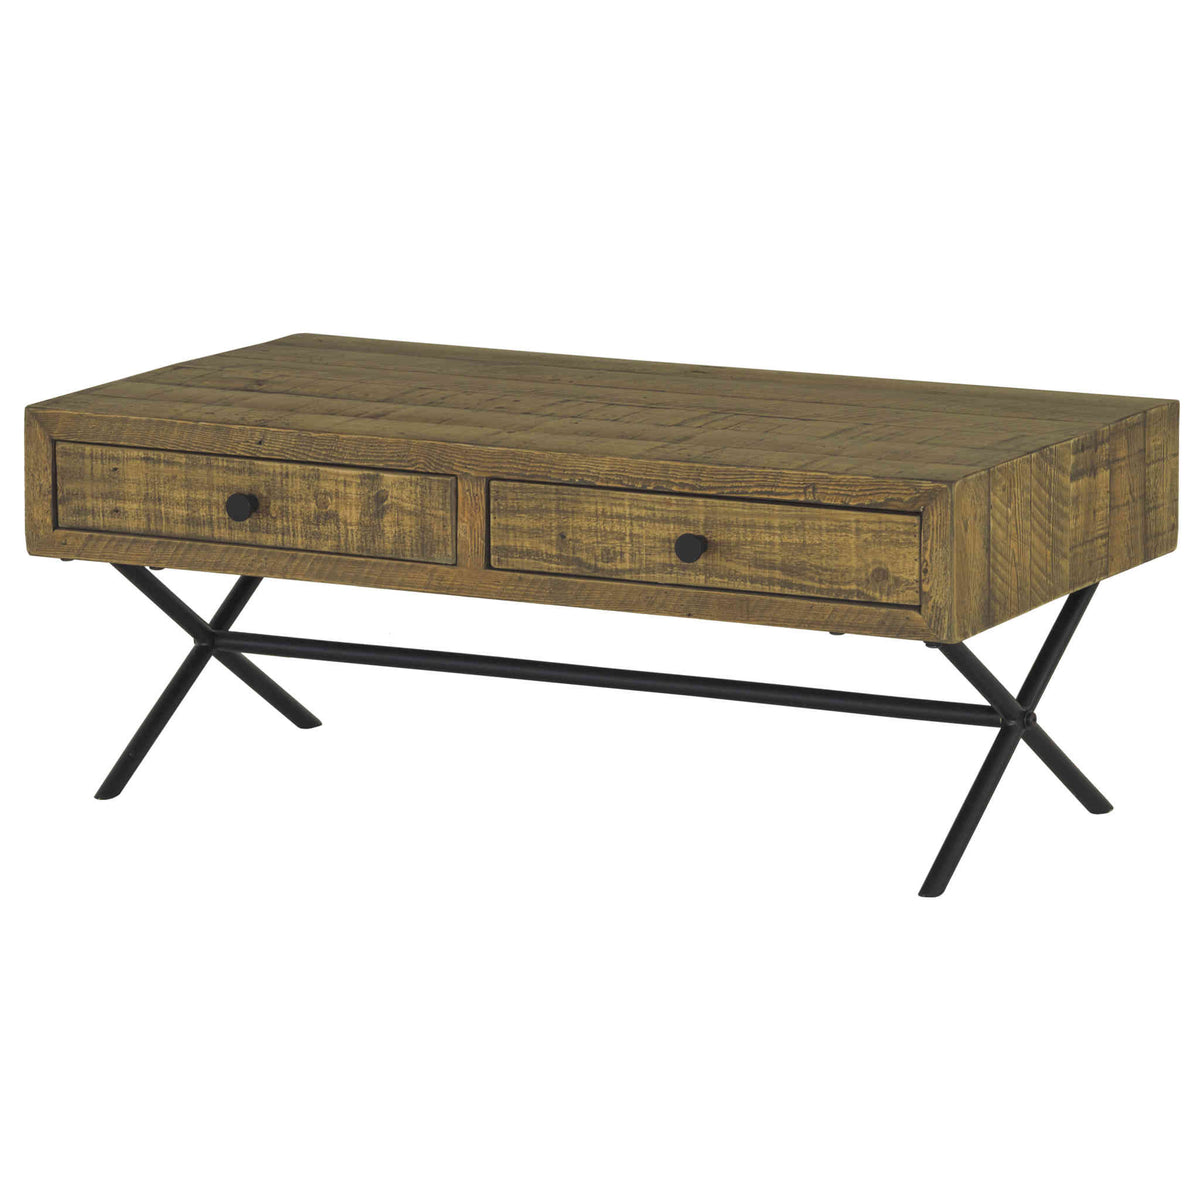 Picture of: Reclaimed Wood Coffee Table With Drawers Rechic Ltd